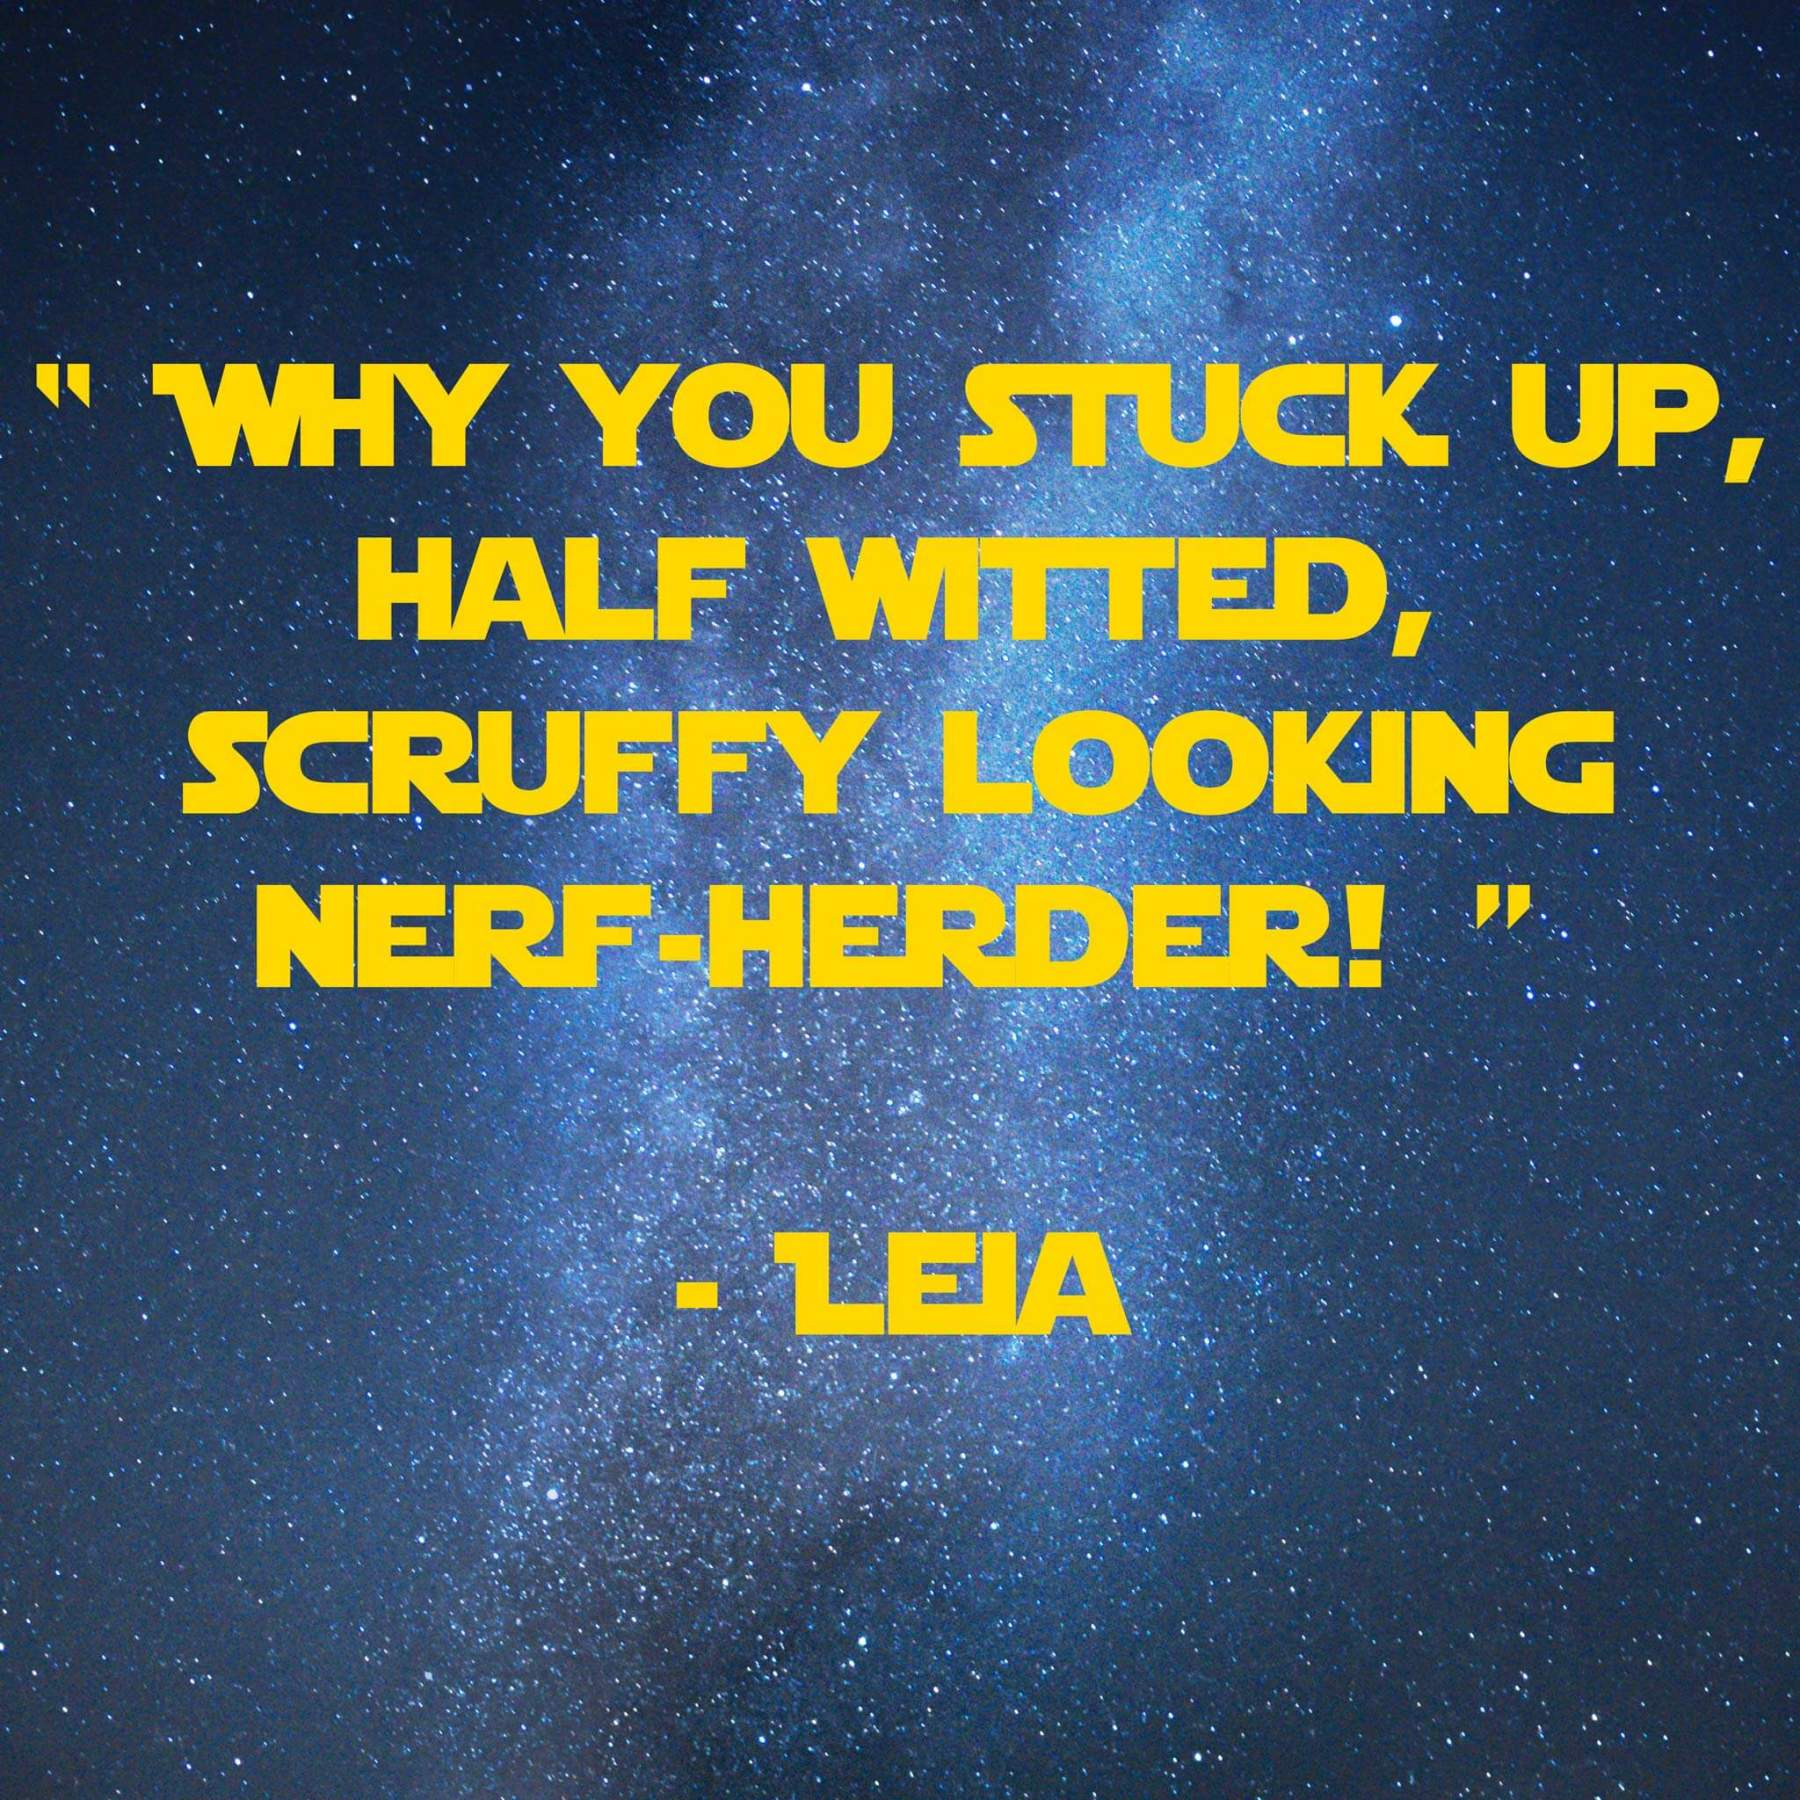 Nerf-herder | 31 Memorable Star Wars Quotes for Geeks